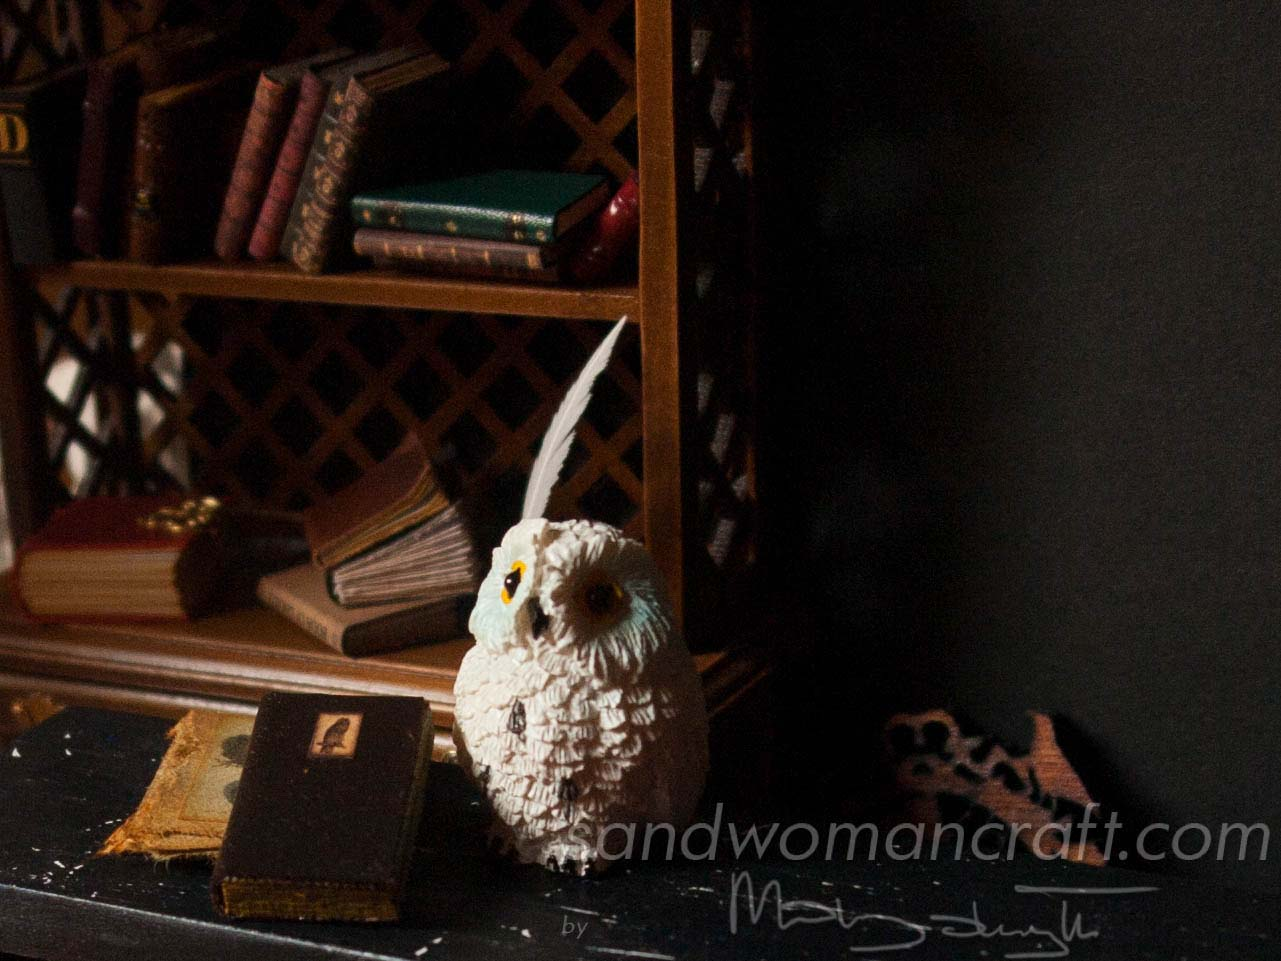 Miniature leather book with Owl